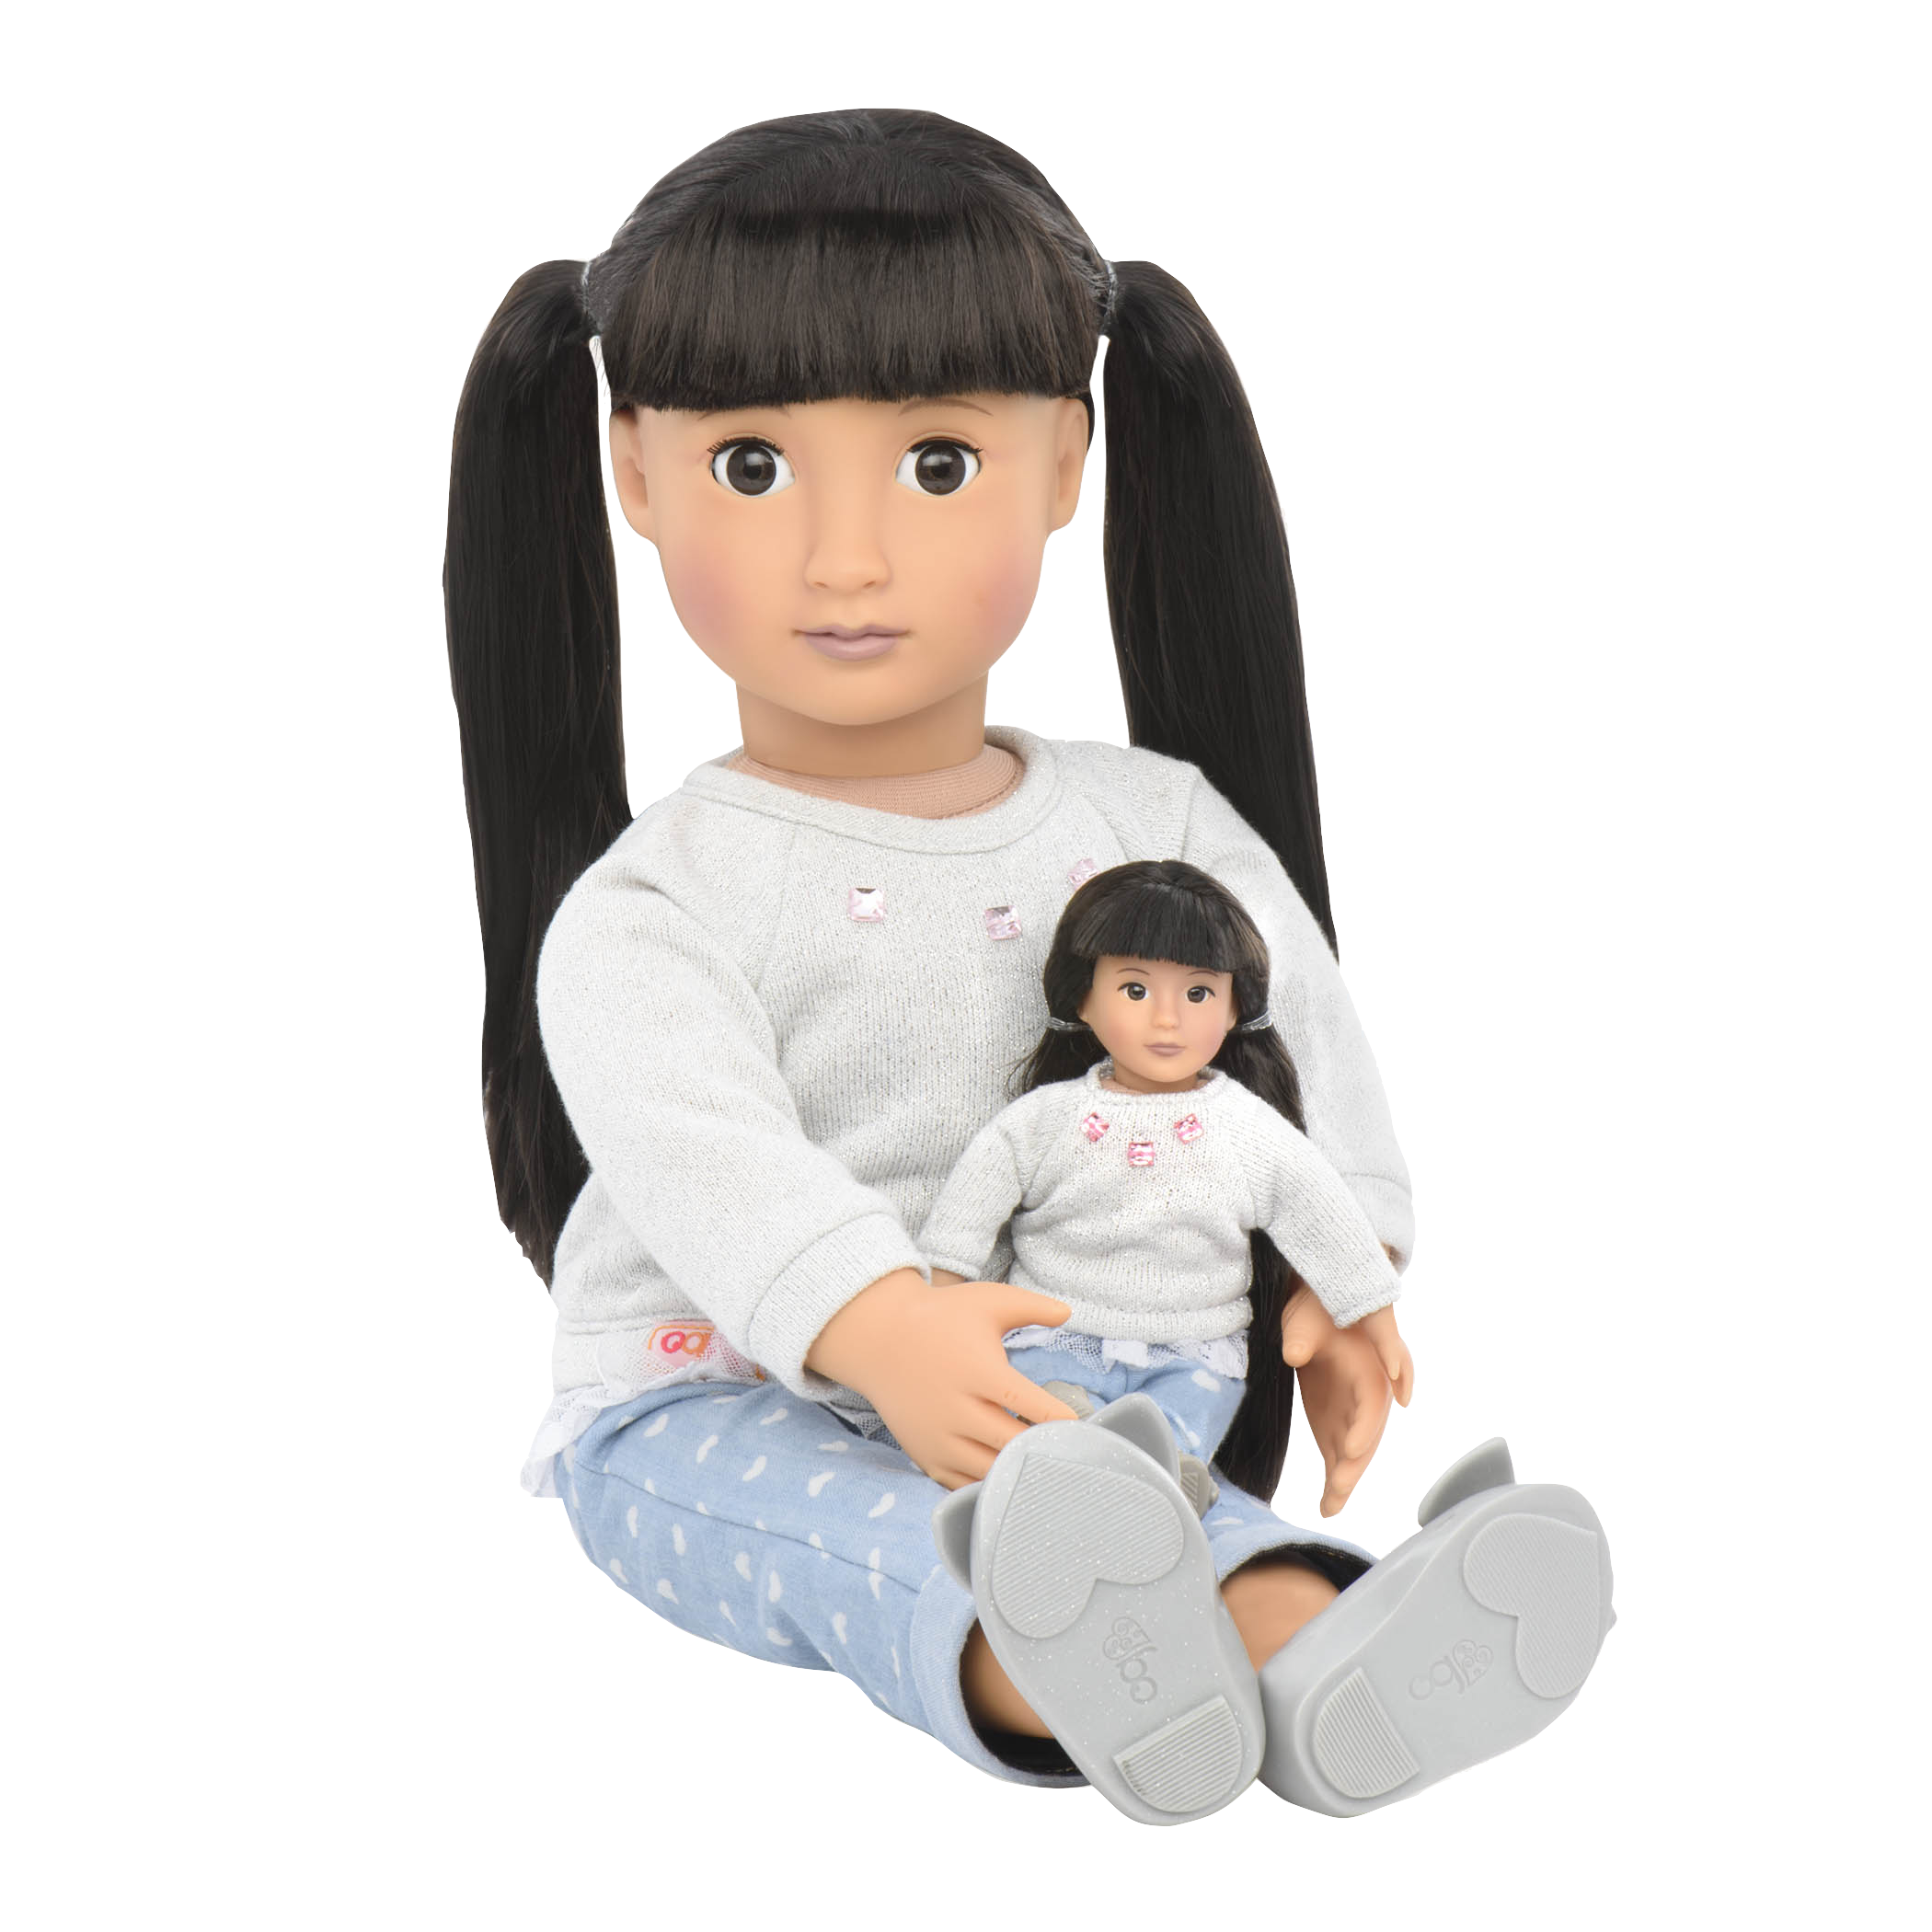 BD33019 Mini May Lee doll with full sized doll